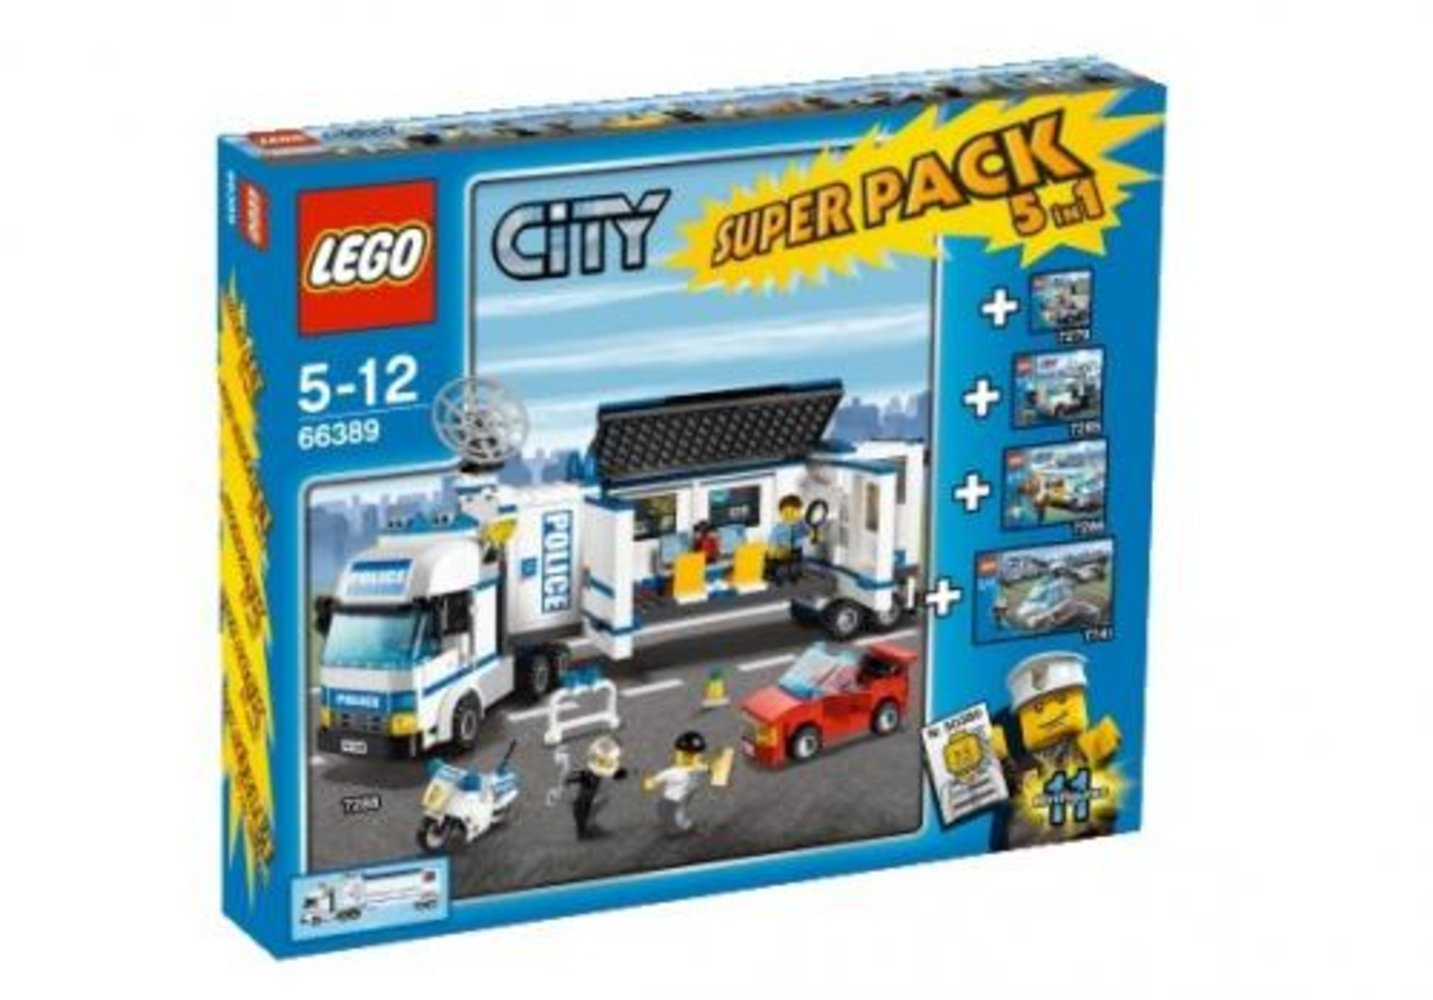 City Super Pack 5 in 1